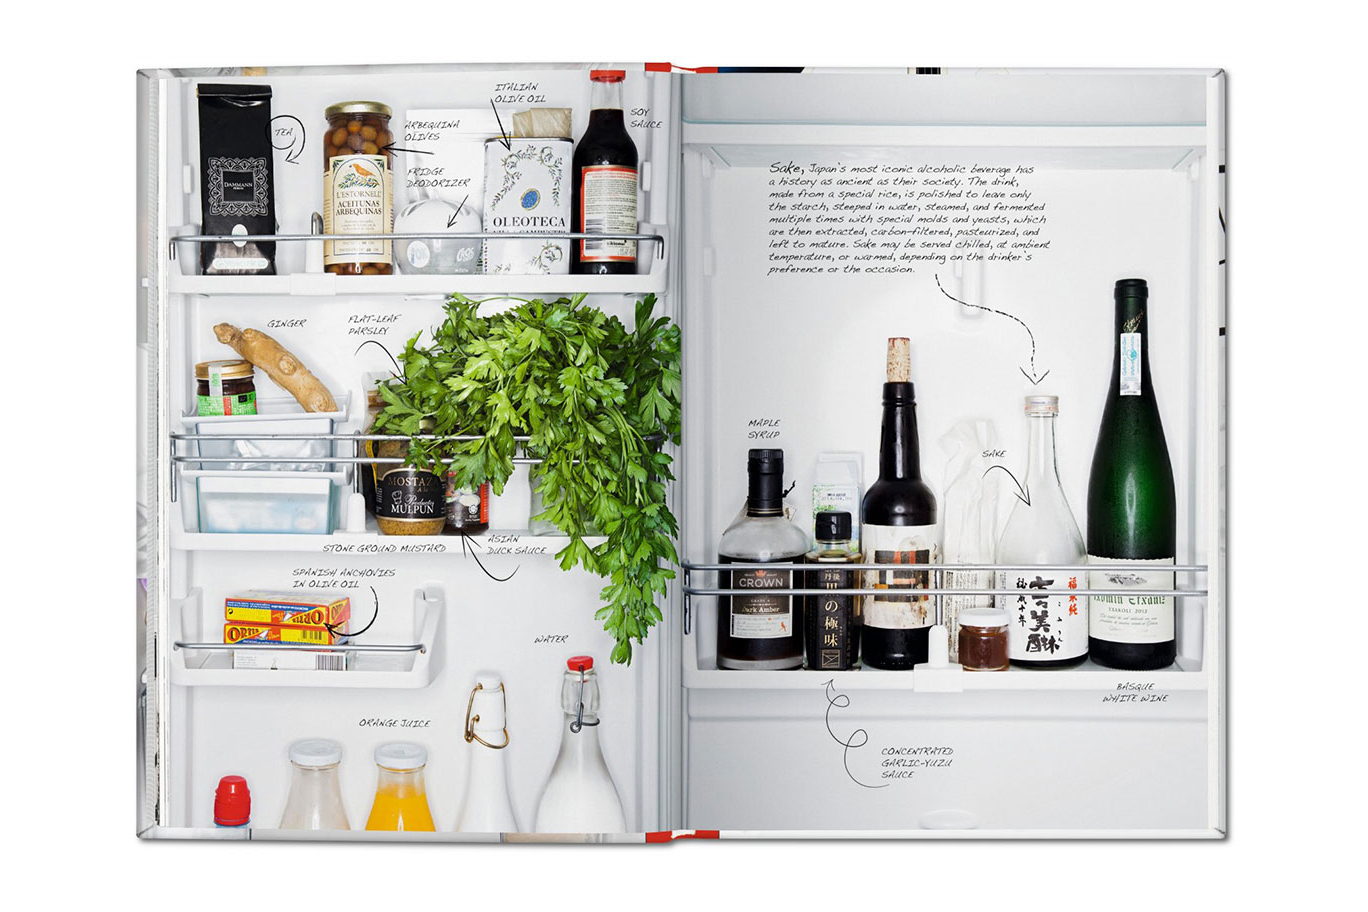 Check out What's Inside These Top Chefs' Fridges